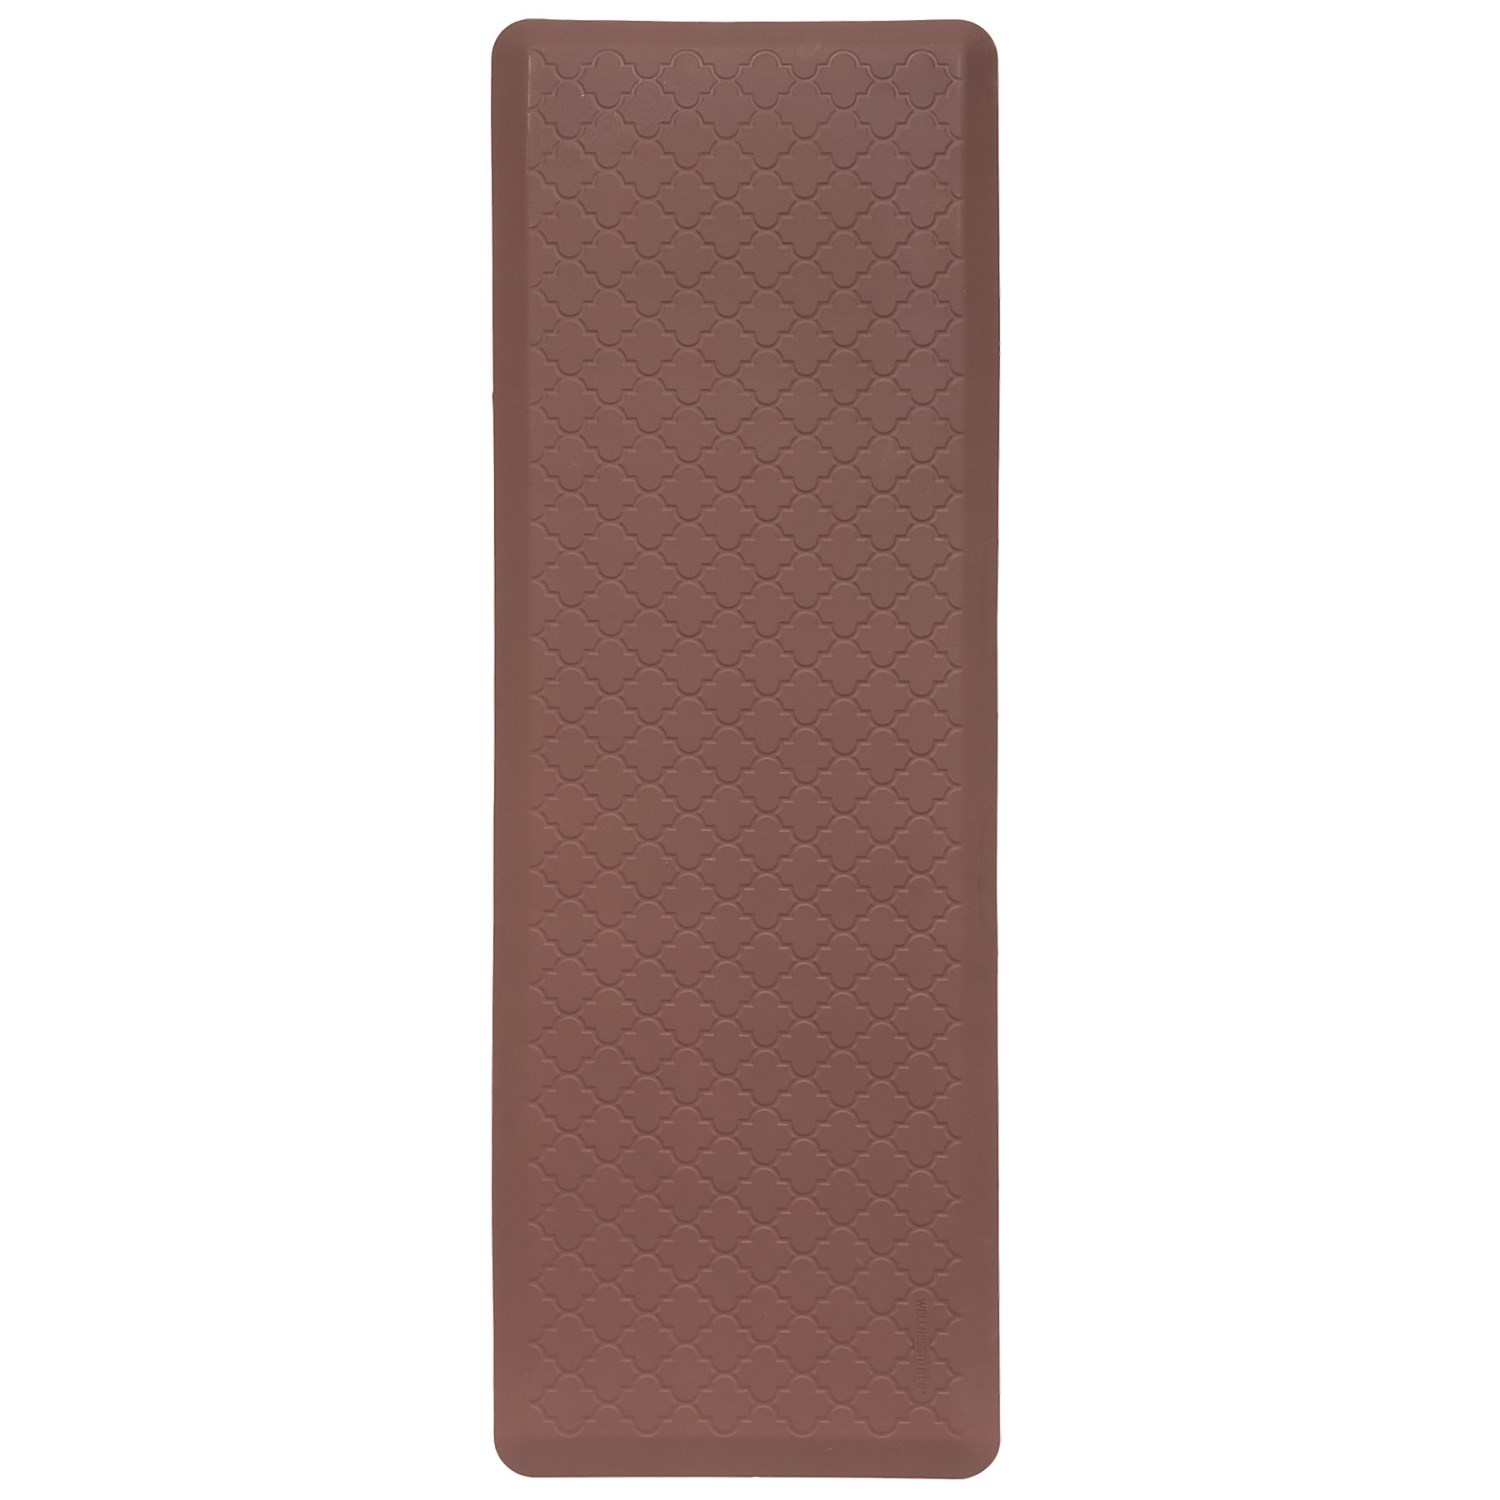 Wellnessmats Cushioned Kitchen Floor